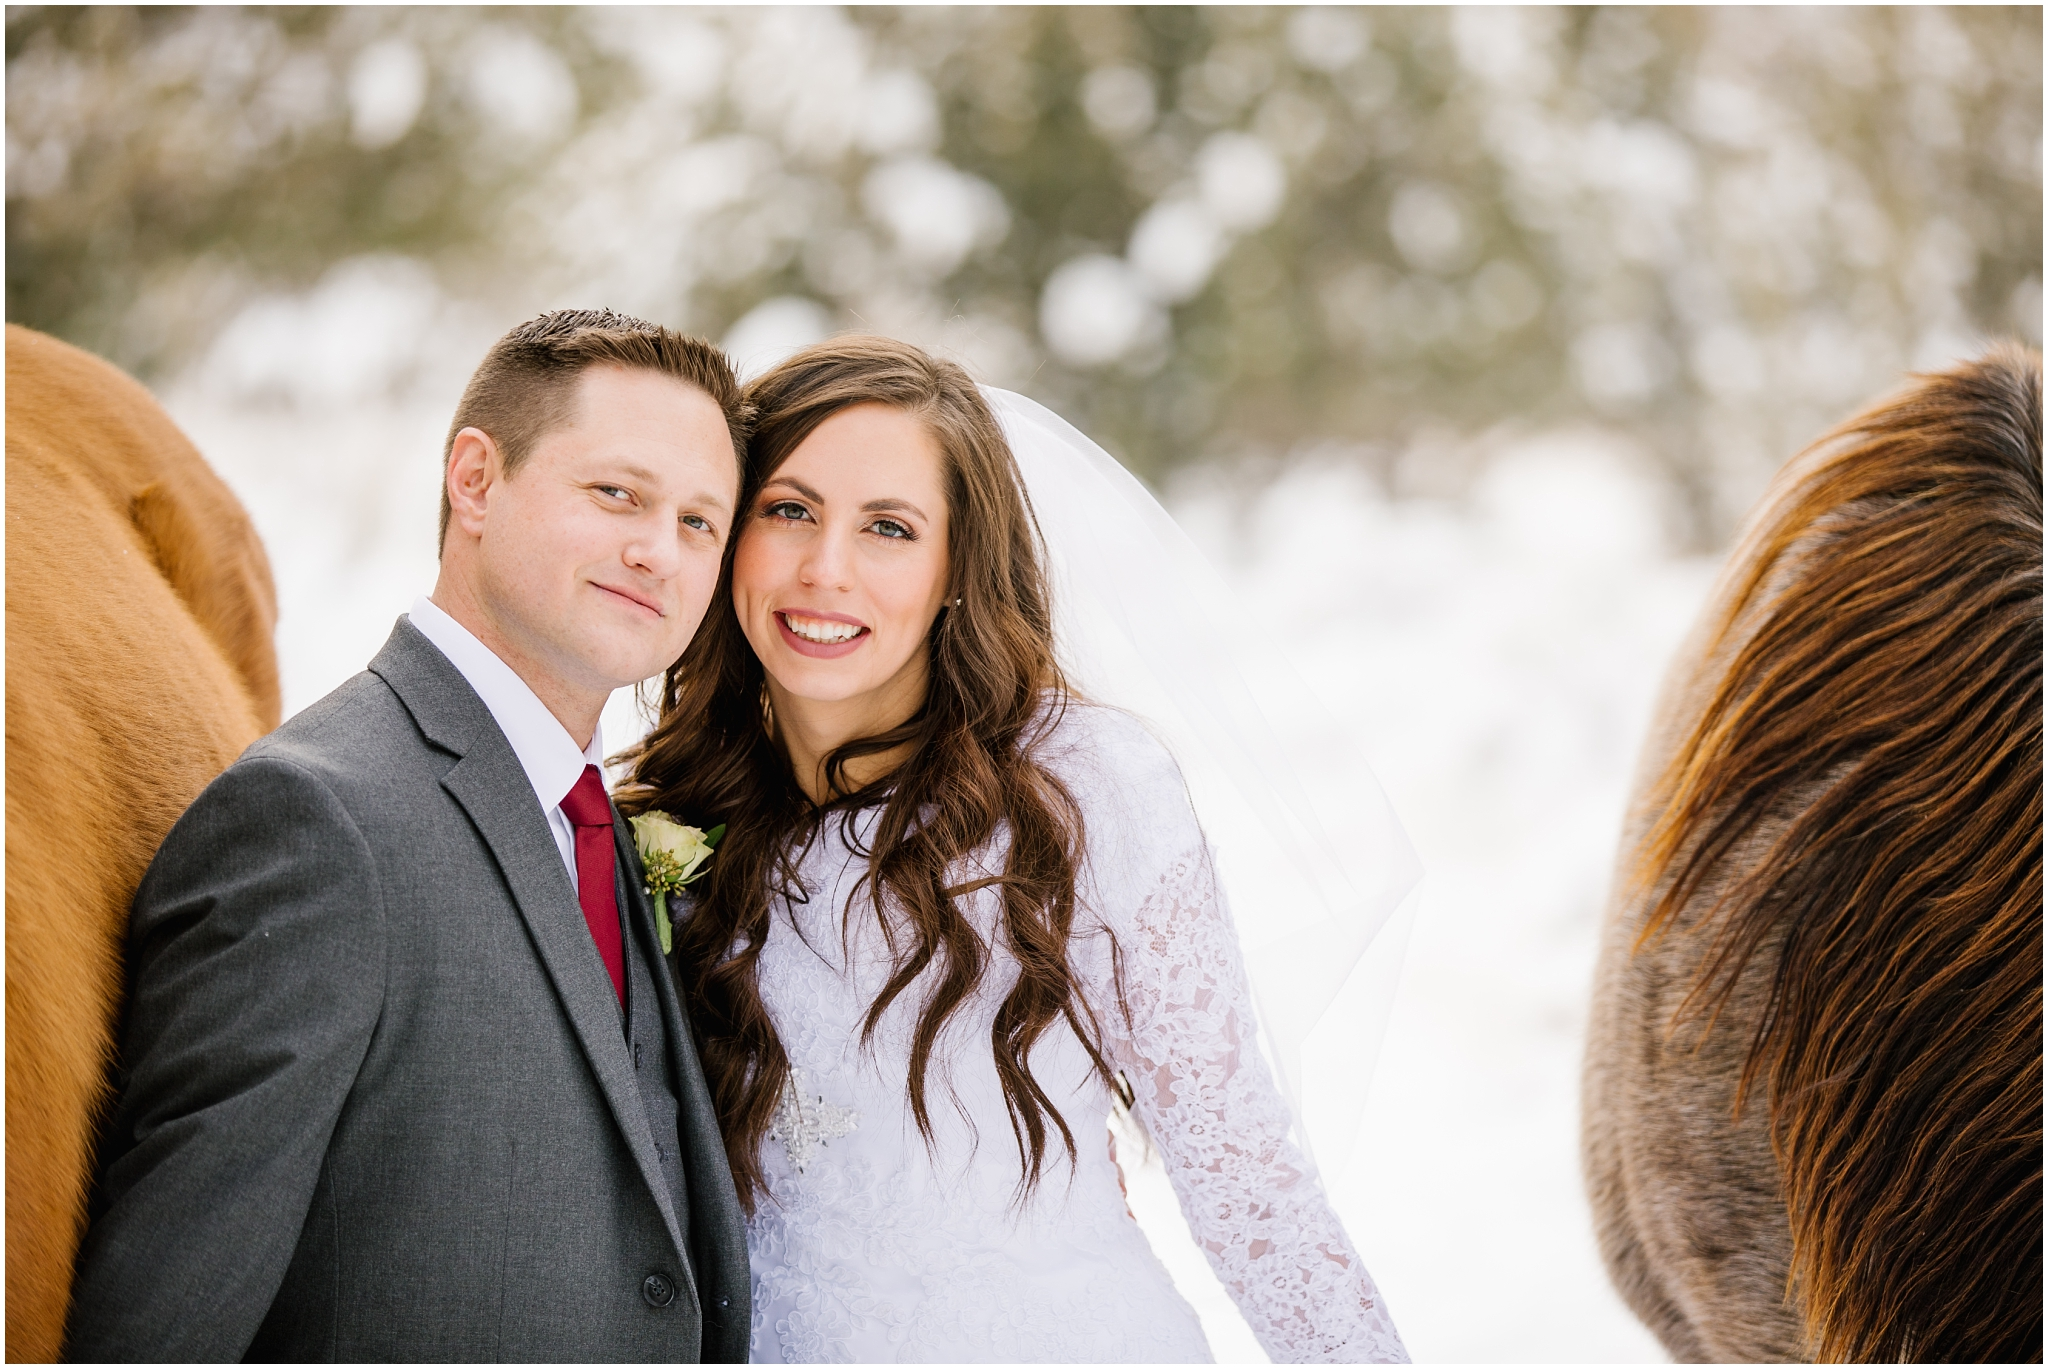 SSBridals-30_Lizzie-B-Imagery-Utah-Wedding-Photographer-Salt-Lake-City-Park-City-Logan-Utah-Temple.jpg